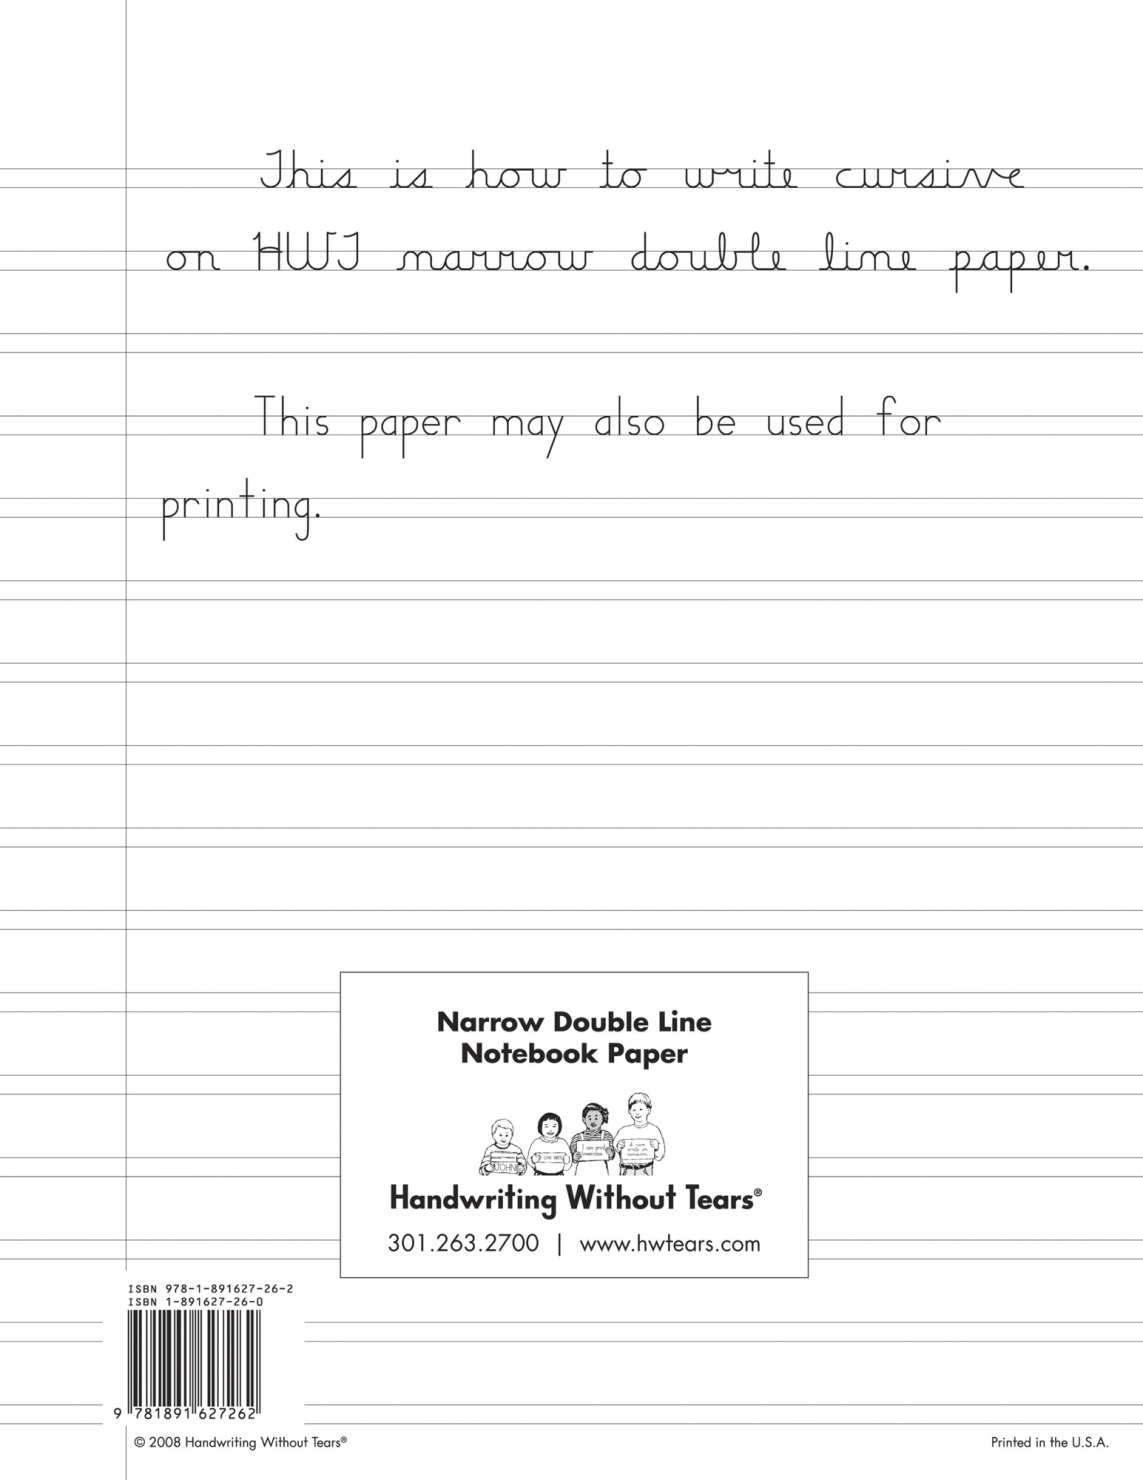 handwriting without tears paper